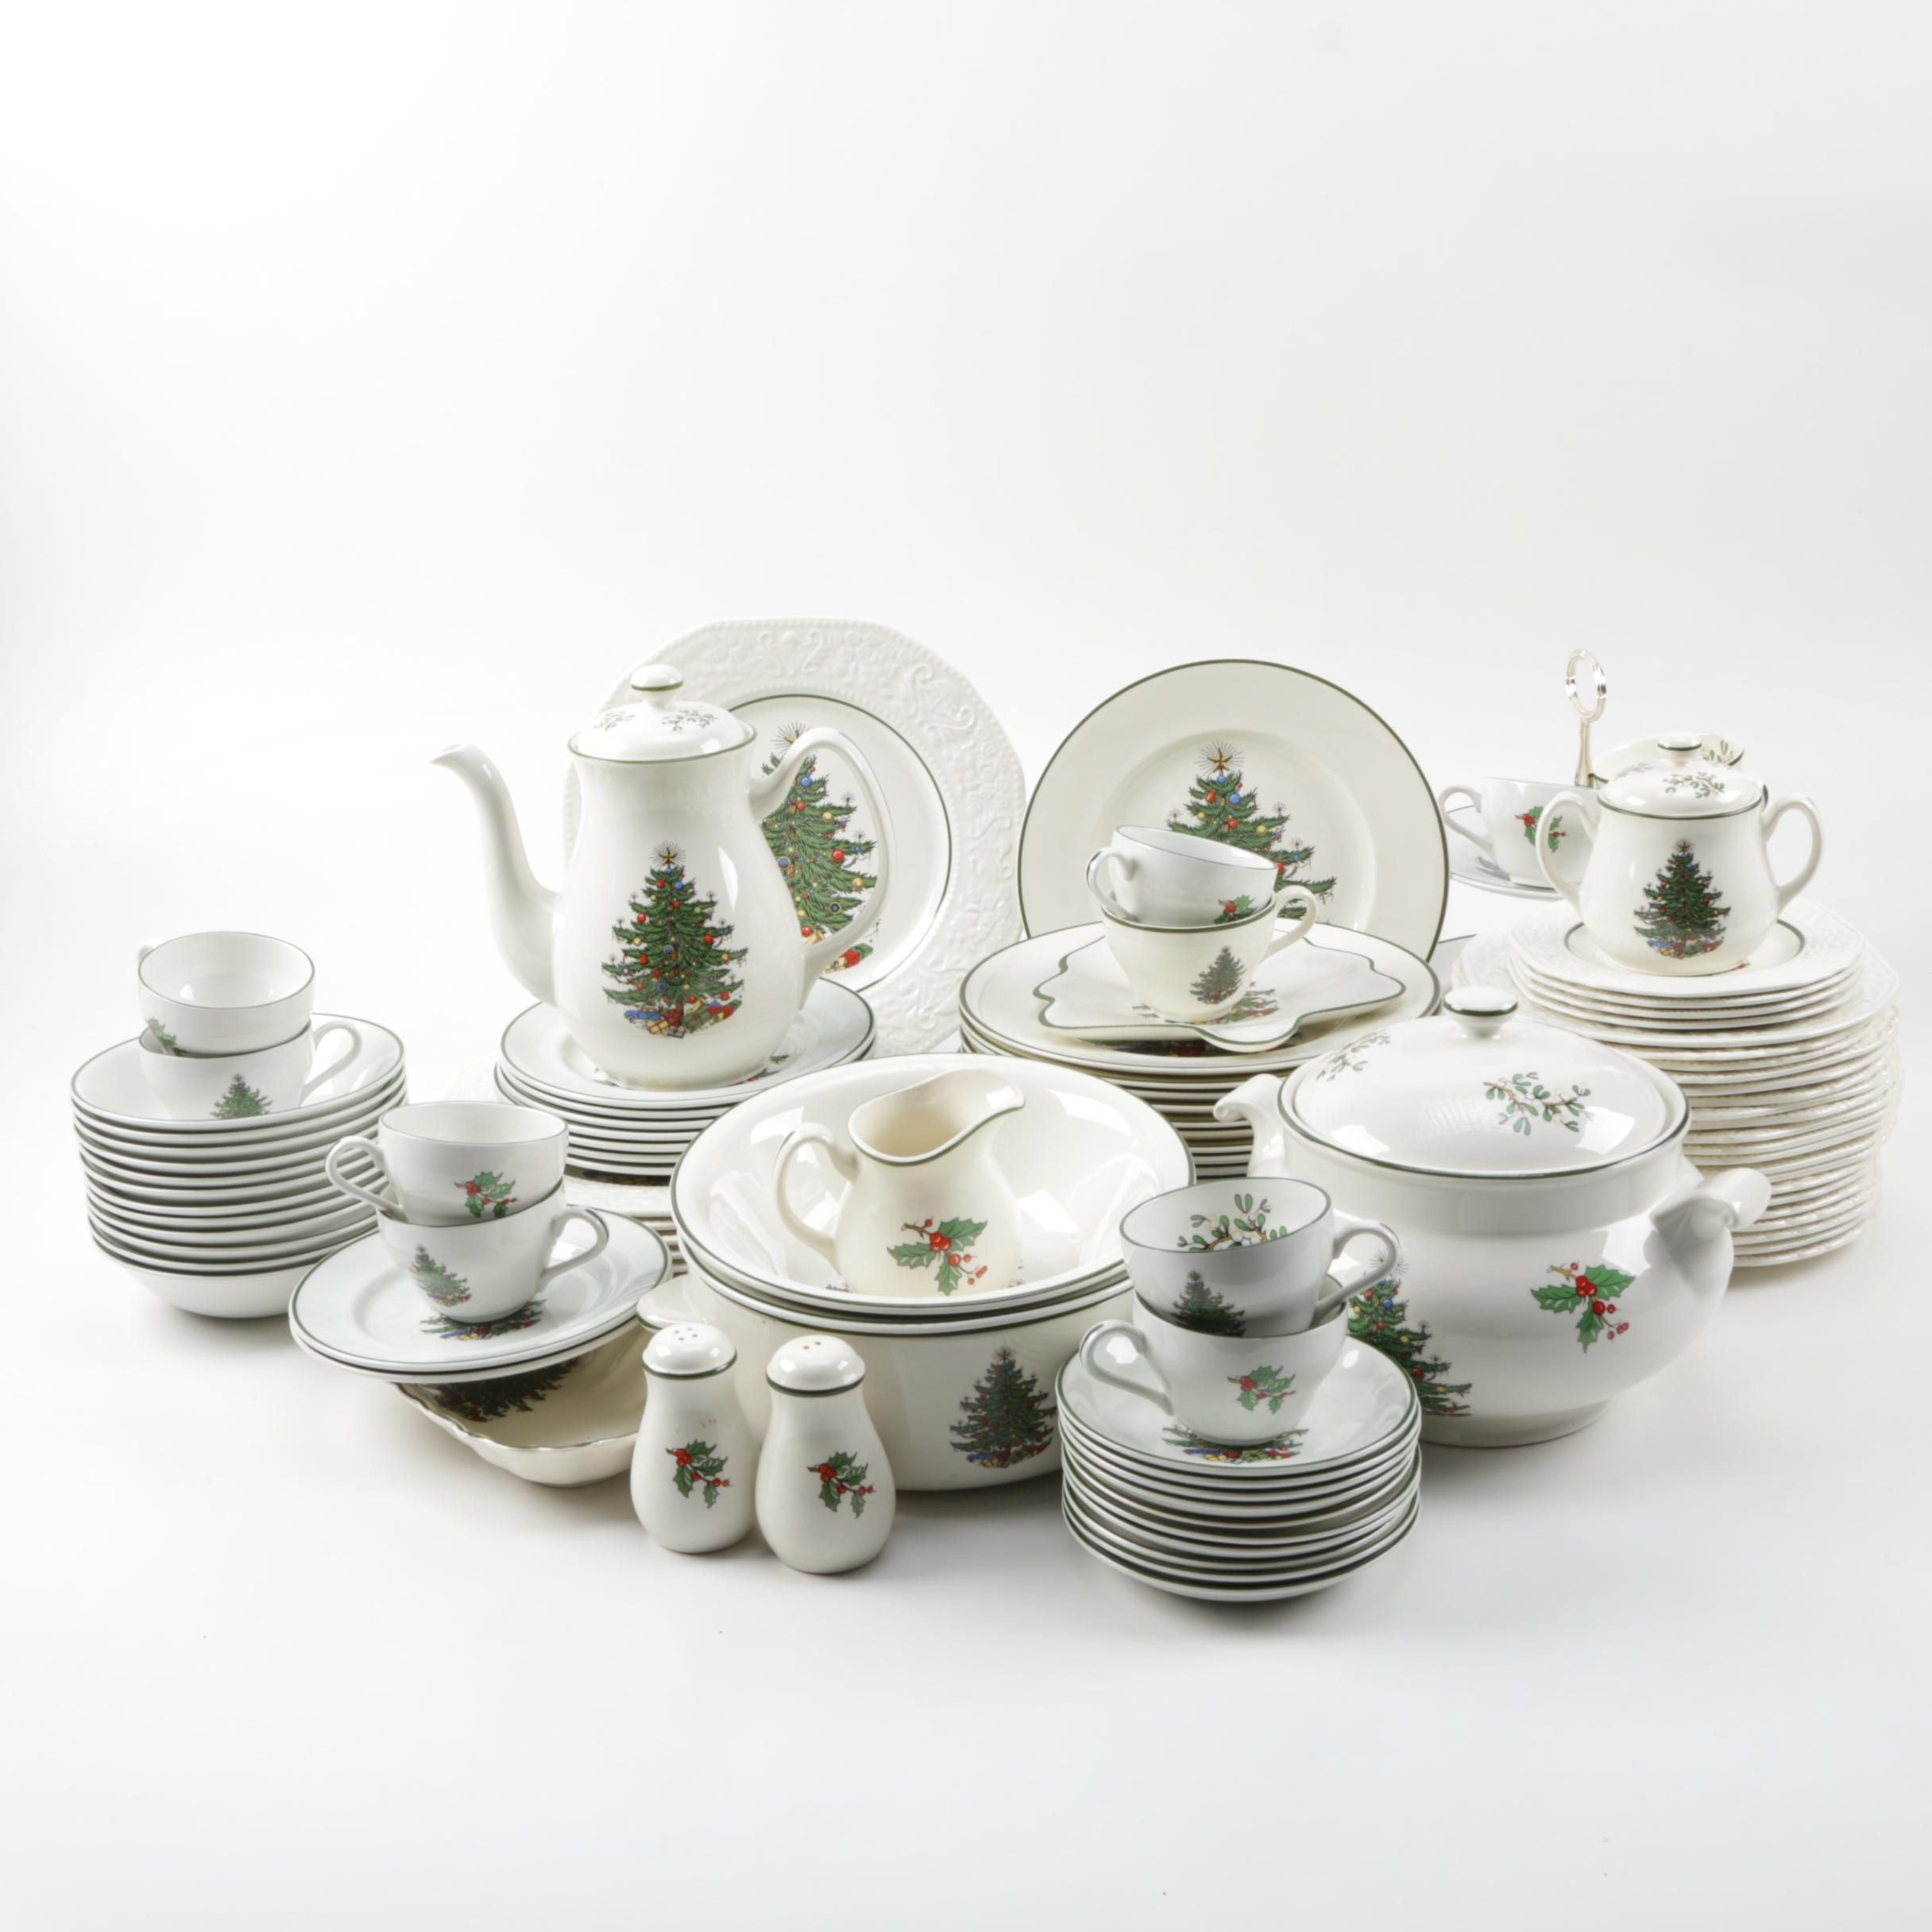 Cuthbertson 'Original Christmas Tree' China Set